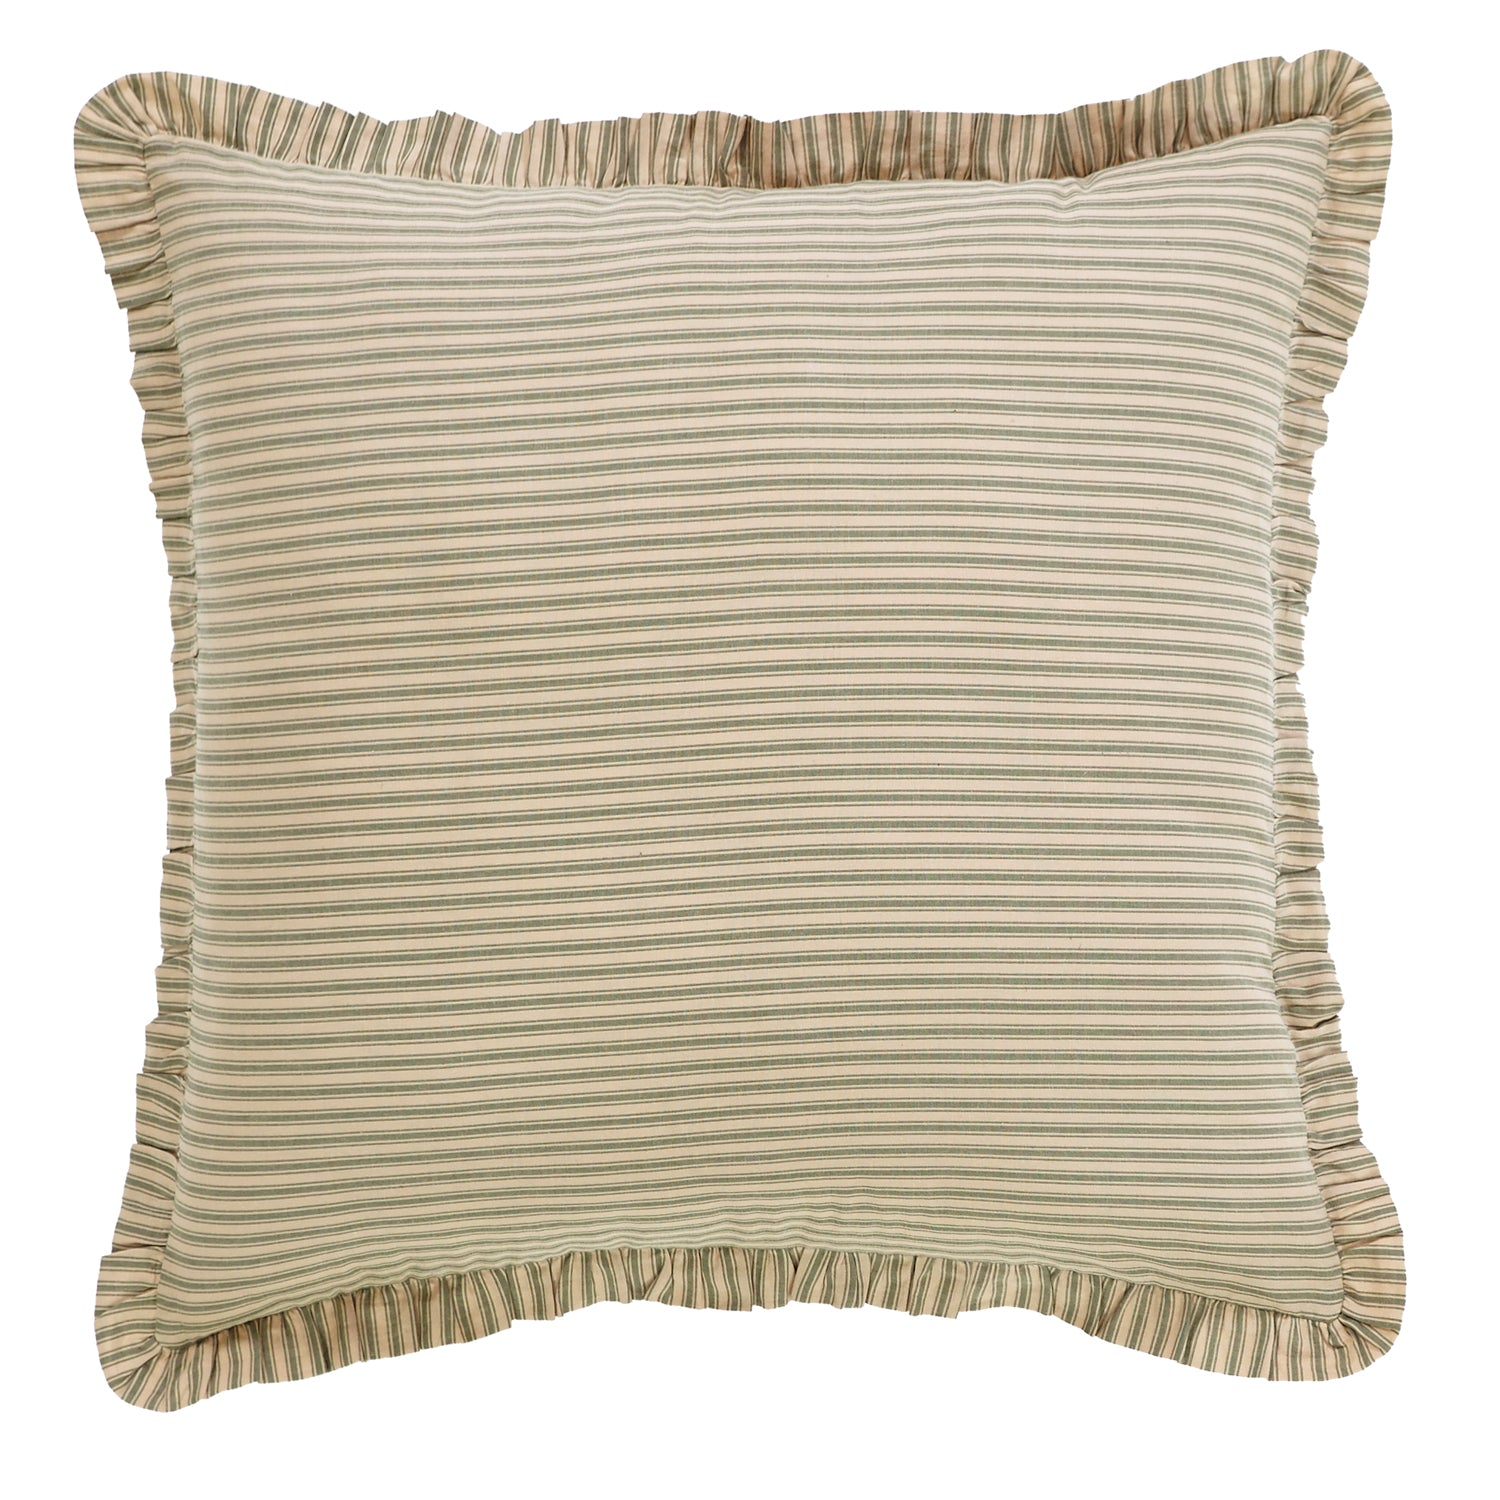 Prairie Winds Green Ticking Stripe Euro Sham 26x26 - Woodrol